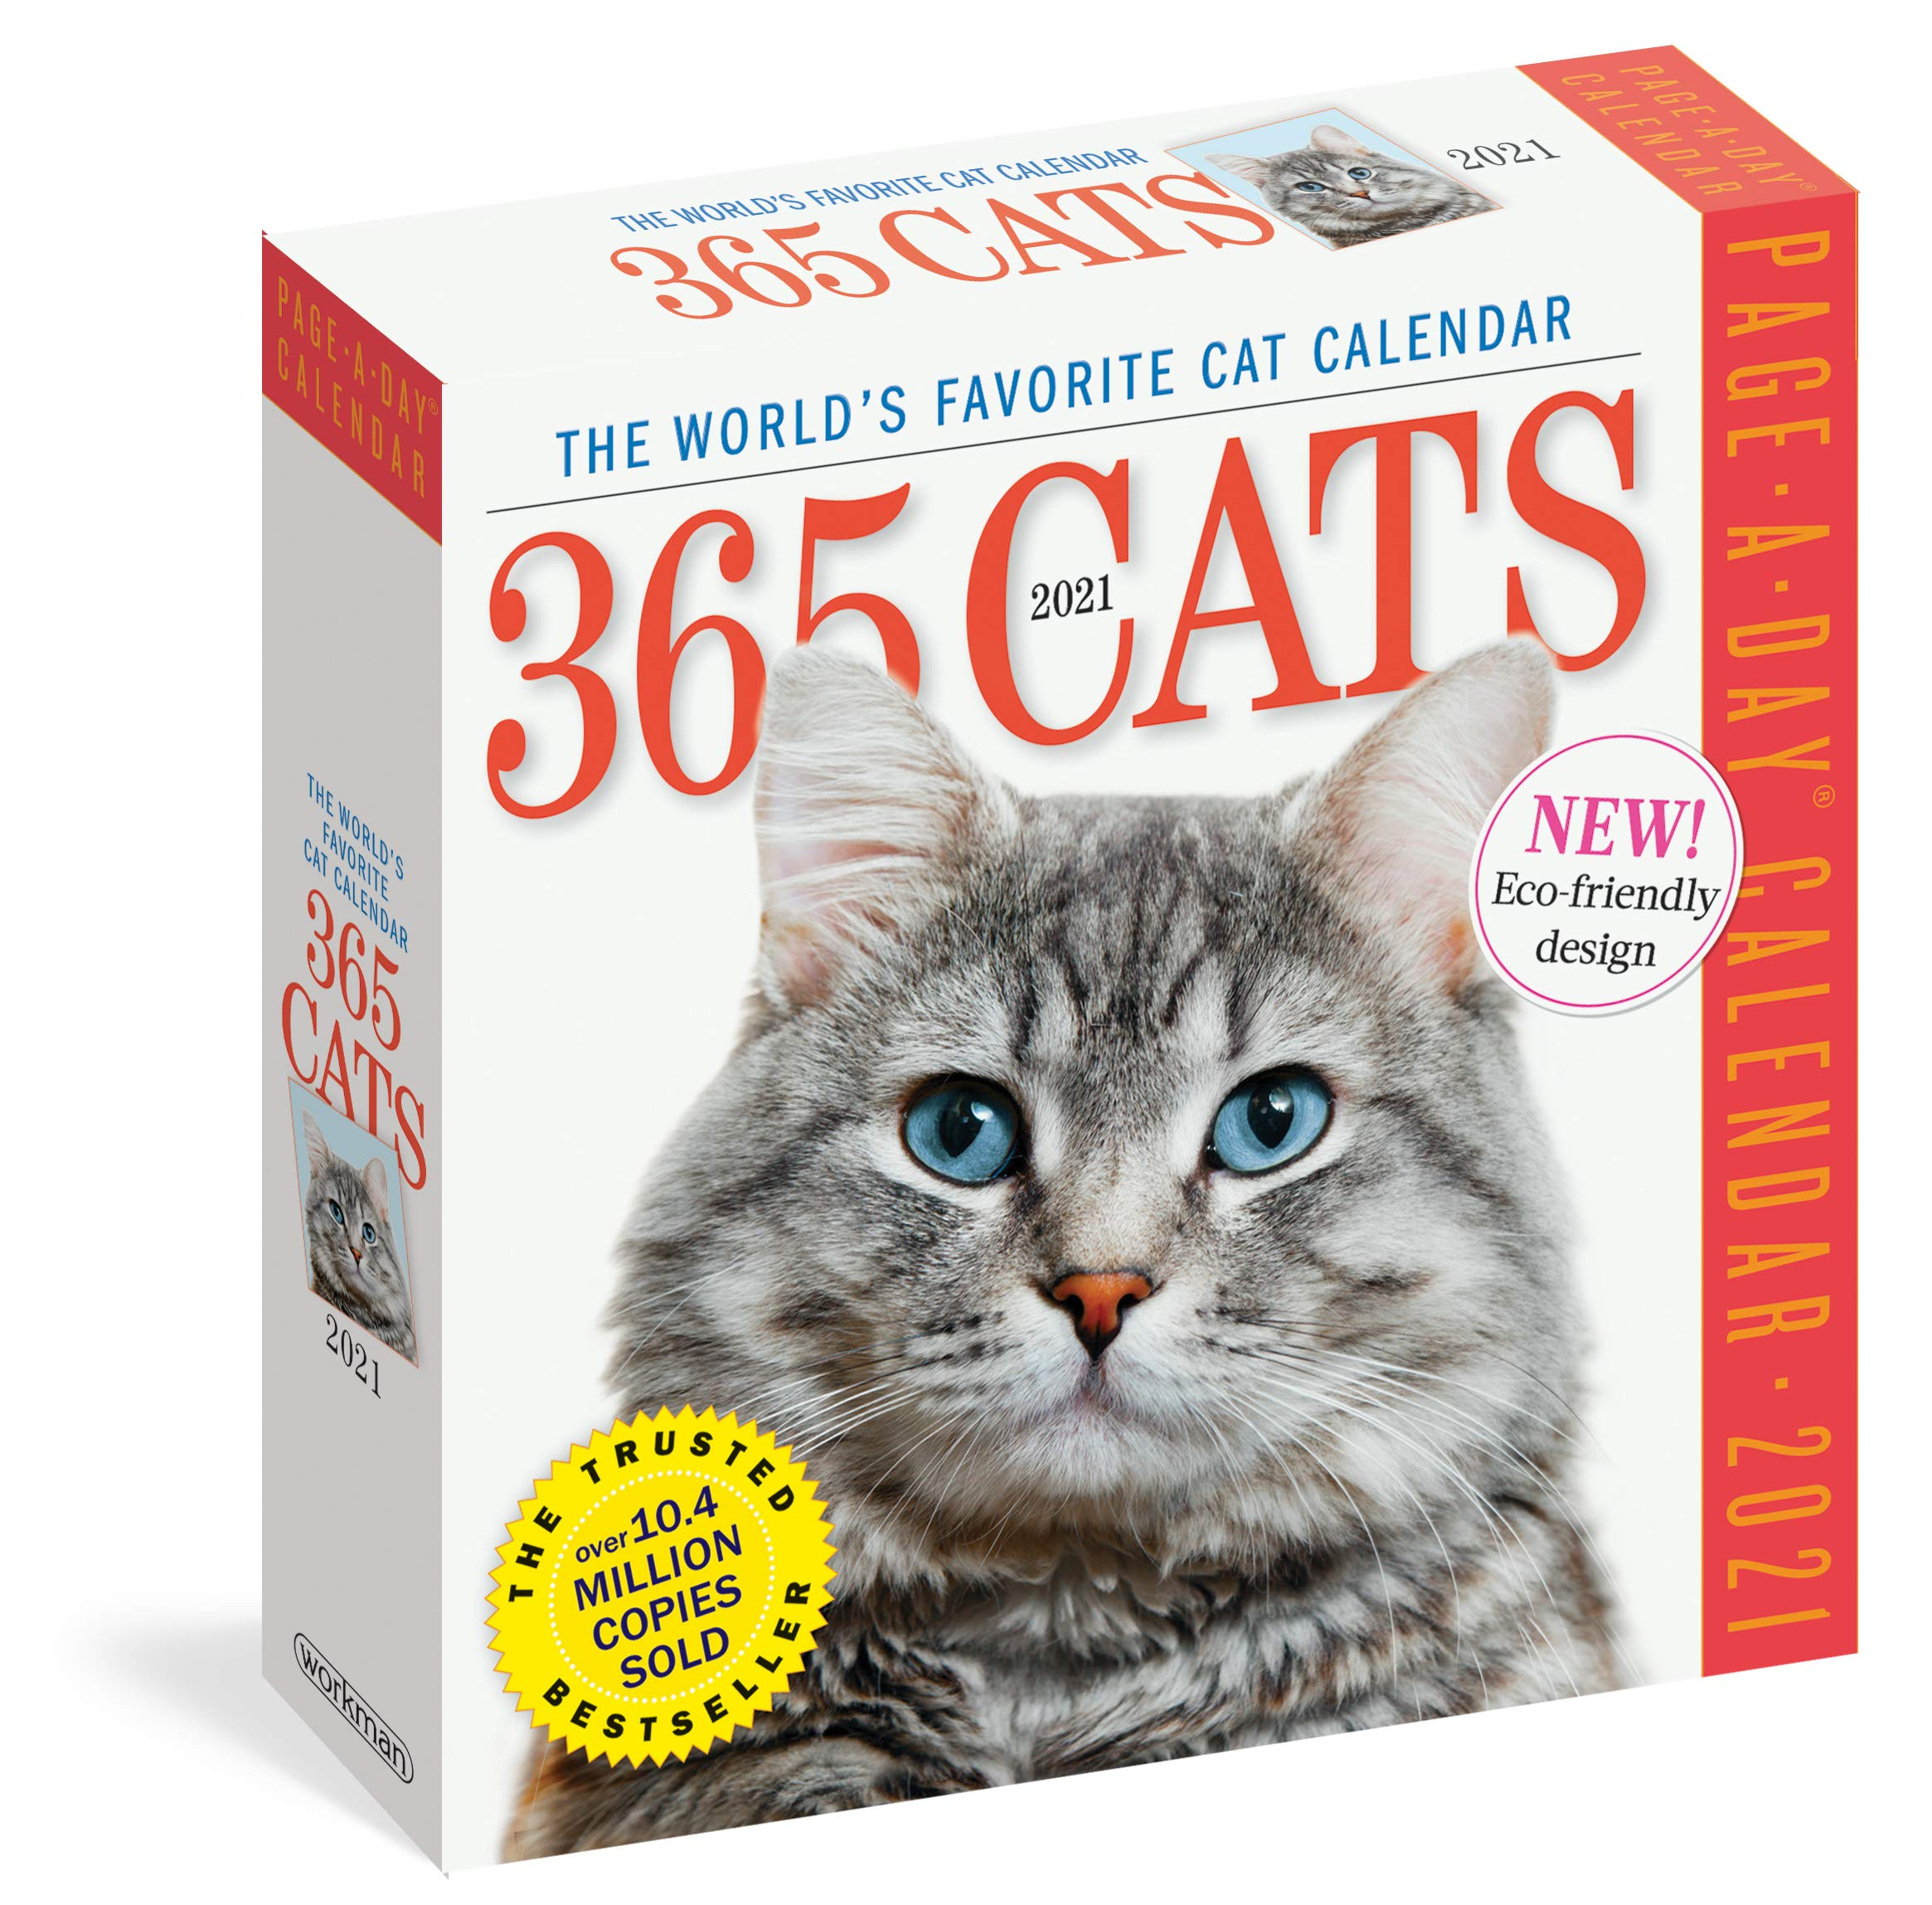 Amazon.com: 365 Cats Page A Day Calendar 2021 (0799234355962